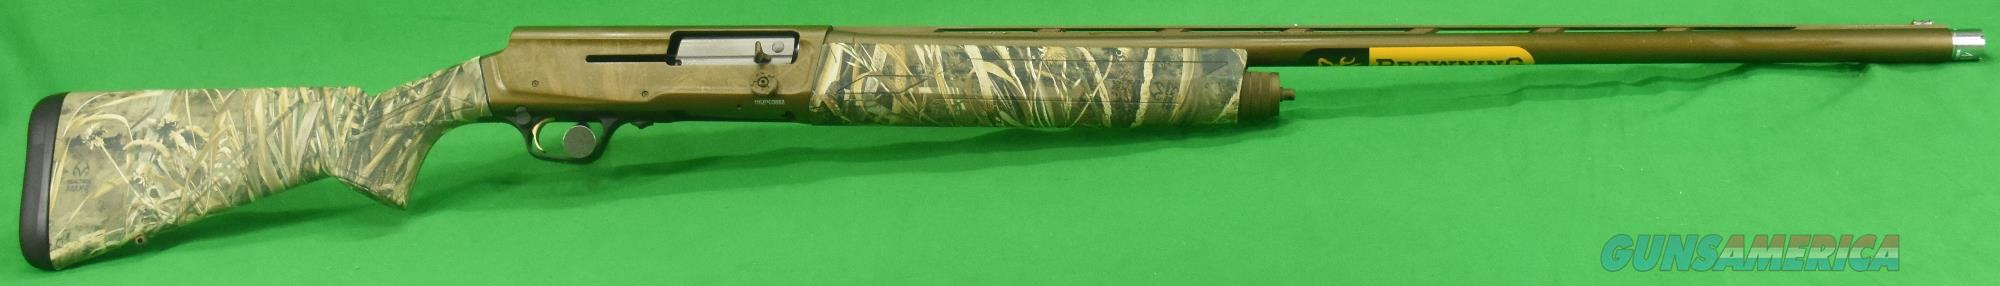 0118422003 Browning A5 Wicked Wing Max 5 Camo 12 Ga 30-3.5In  Guns > Shotguns > Browning Shotguns > Autoloaders > Hunting